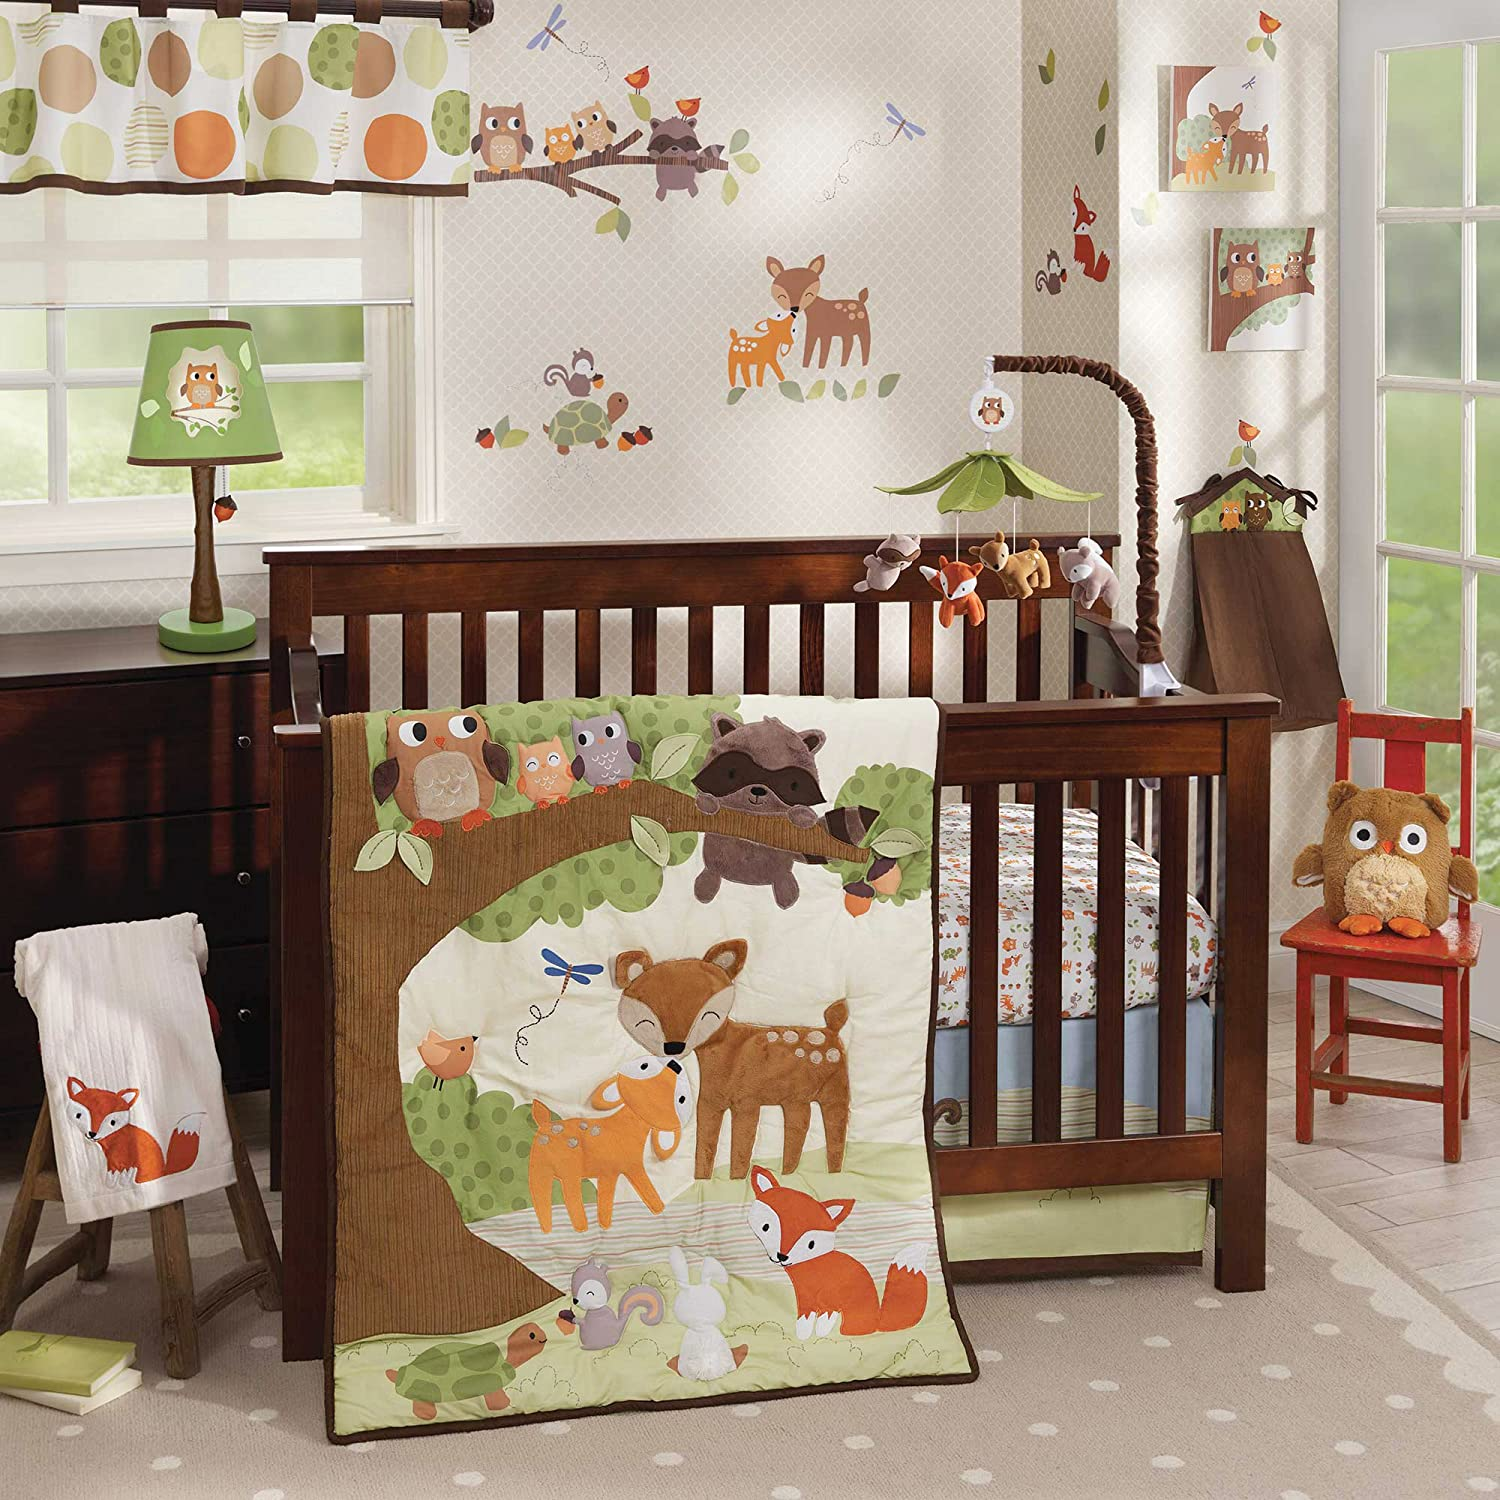 Baby cribs amazon - Woodland Tales 4 Piece Baby Crib Bedding Set By Lambs Ivy